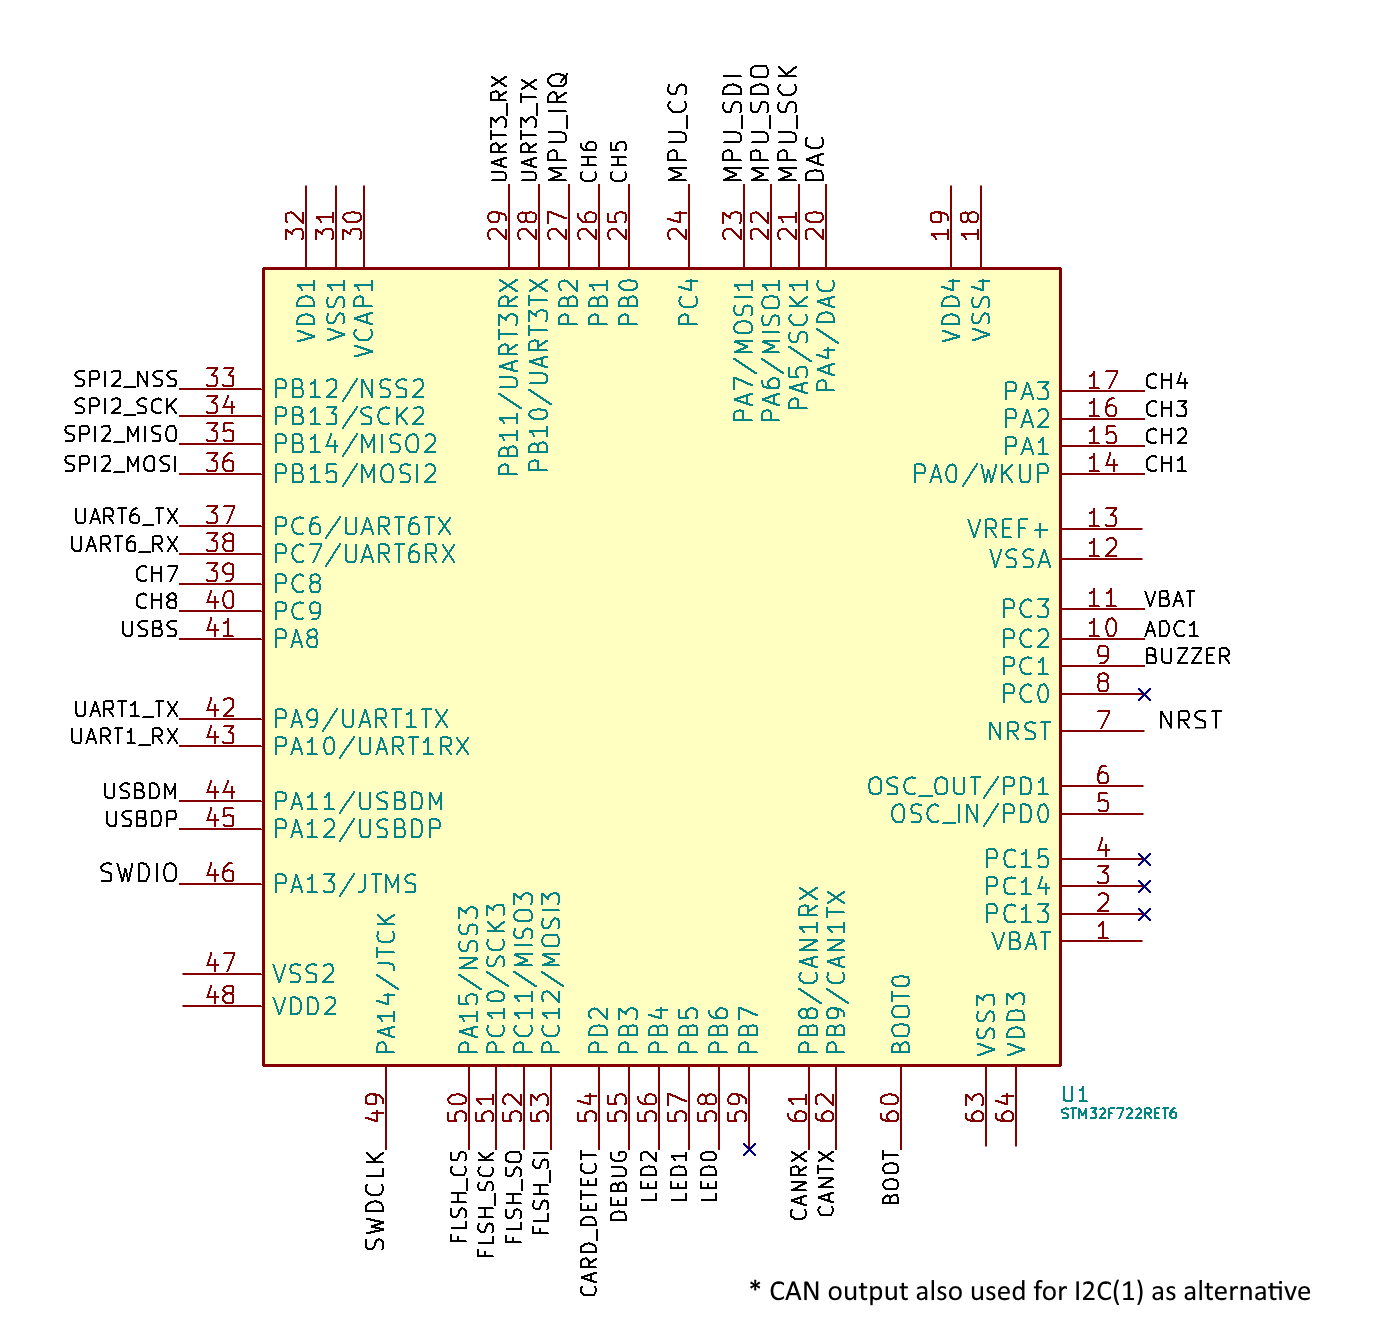 nero rev1 mcu schematic board nero � betaflight betaflight wiki � github betaflight f3 wiring diagram at gsmportal.co